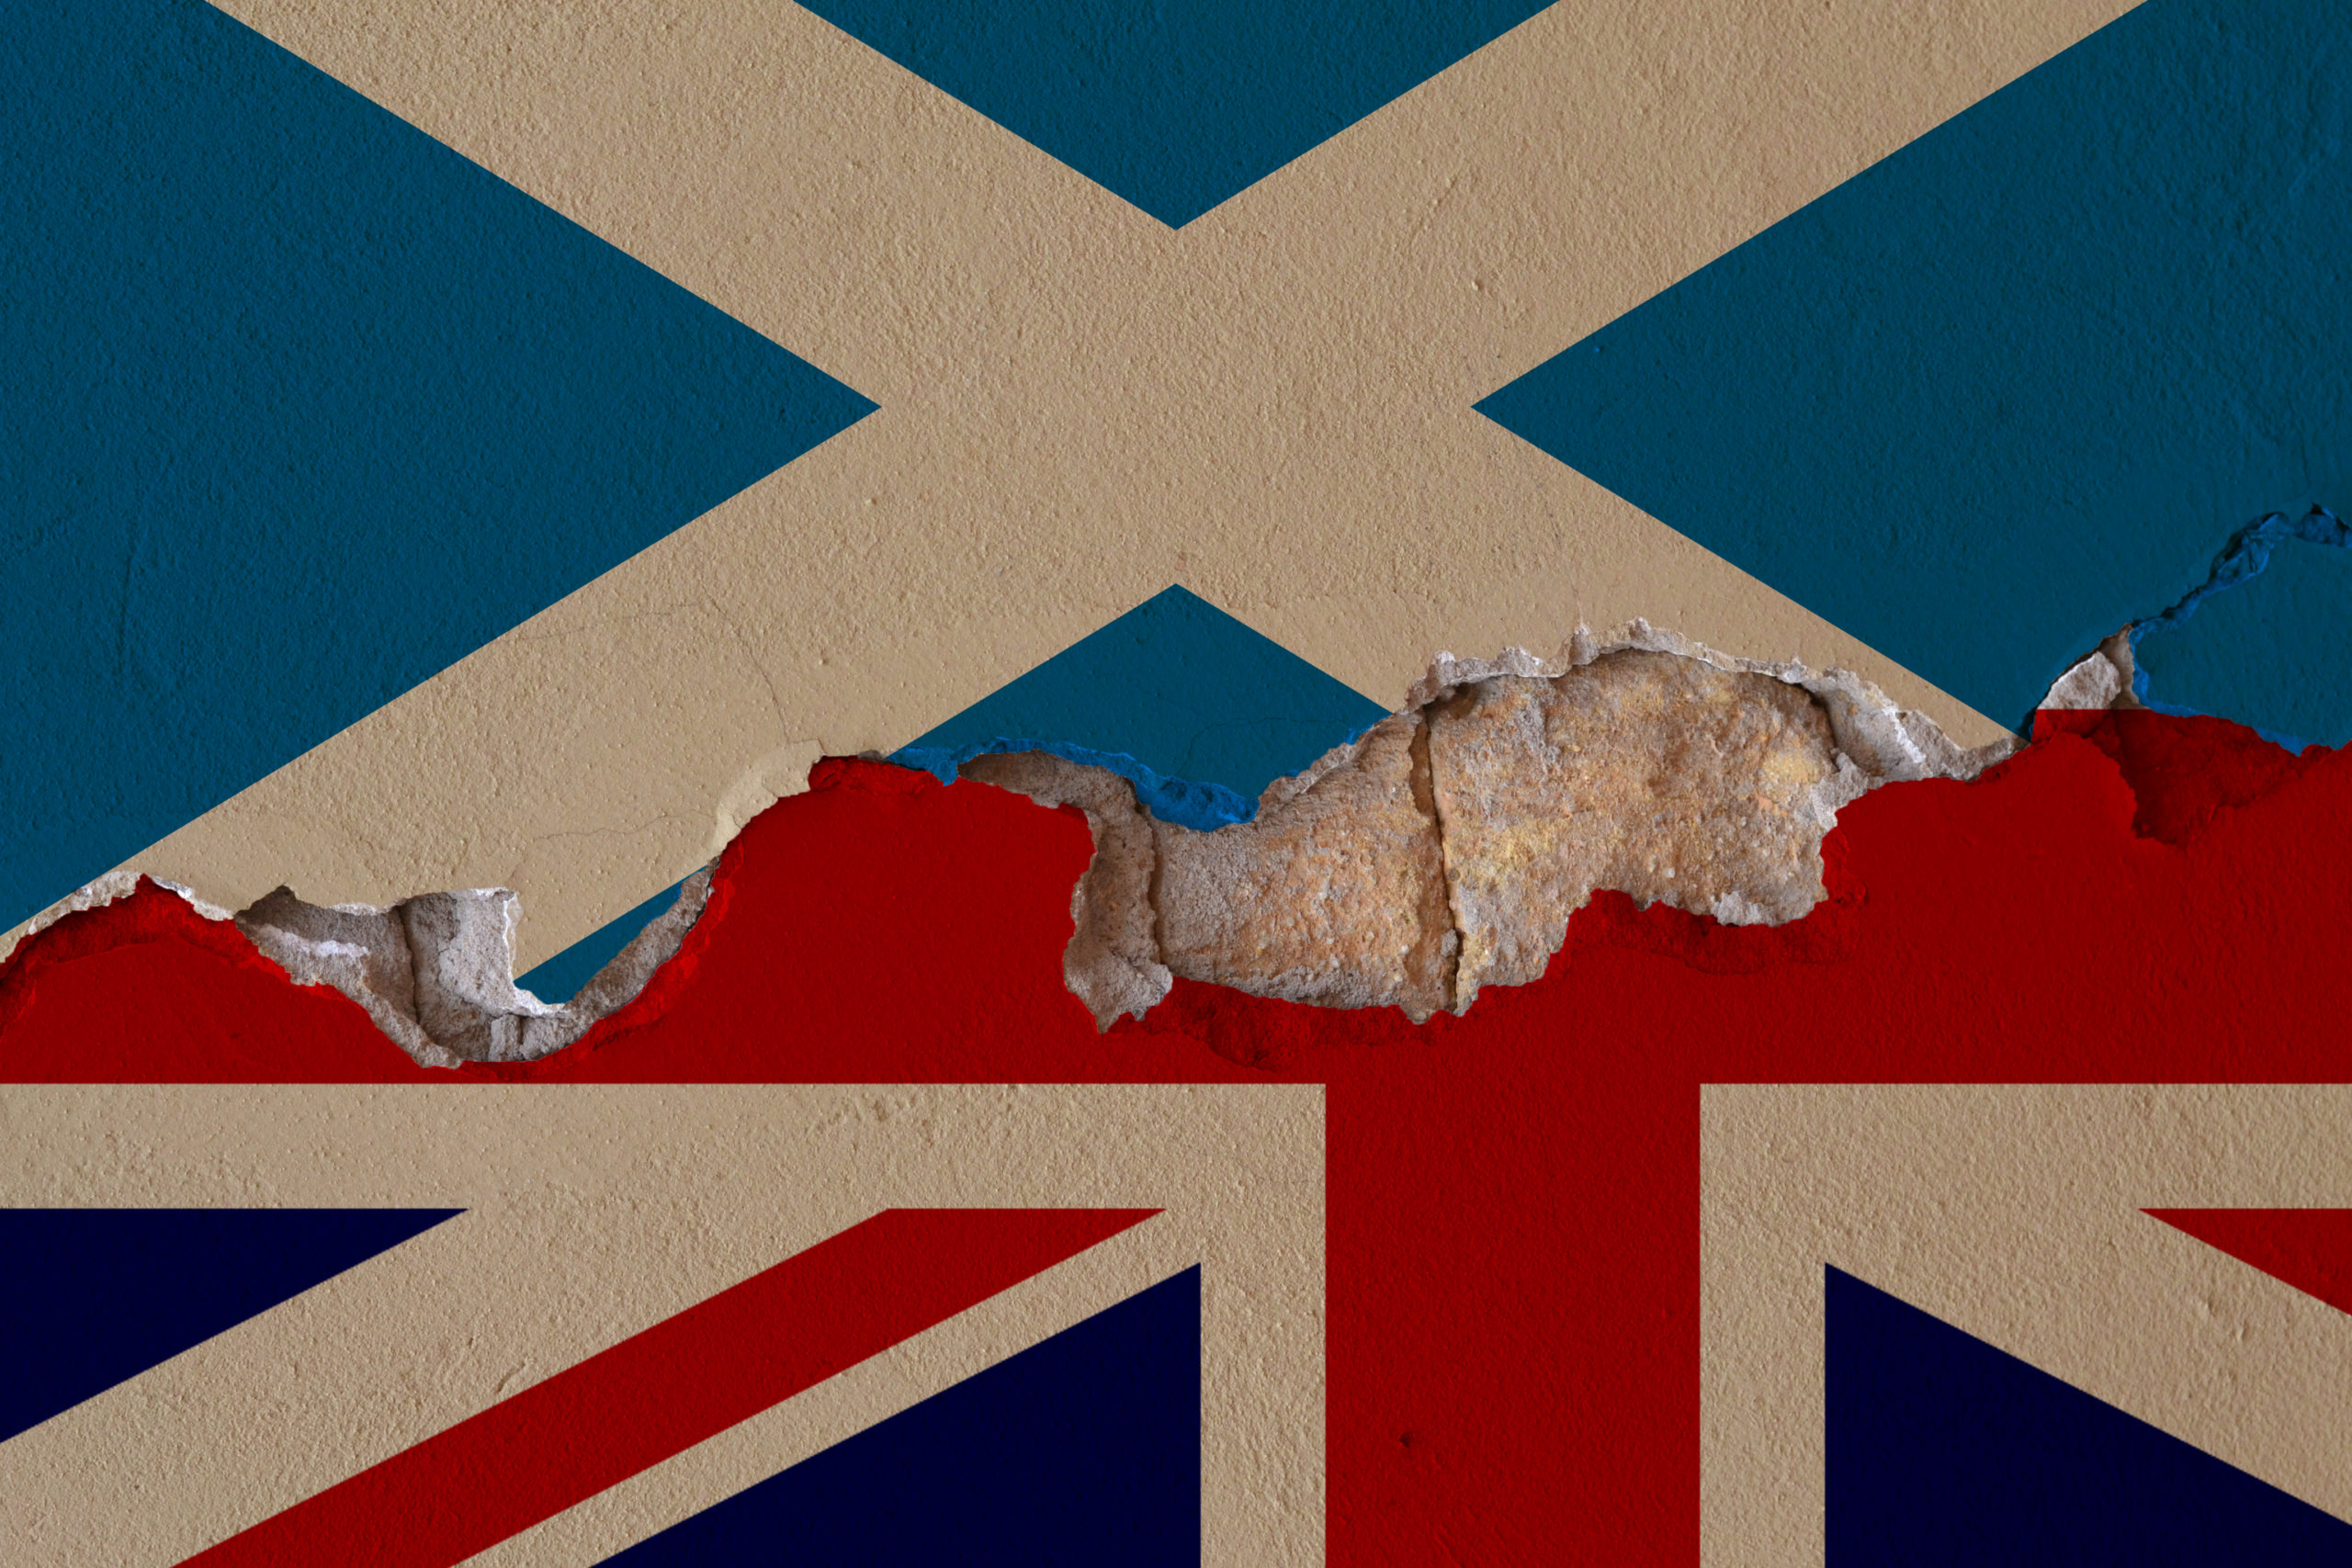 'The settled will': Scottish sovereignty in an age of thoughtless unionism